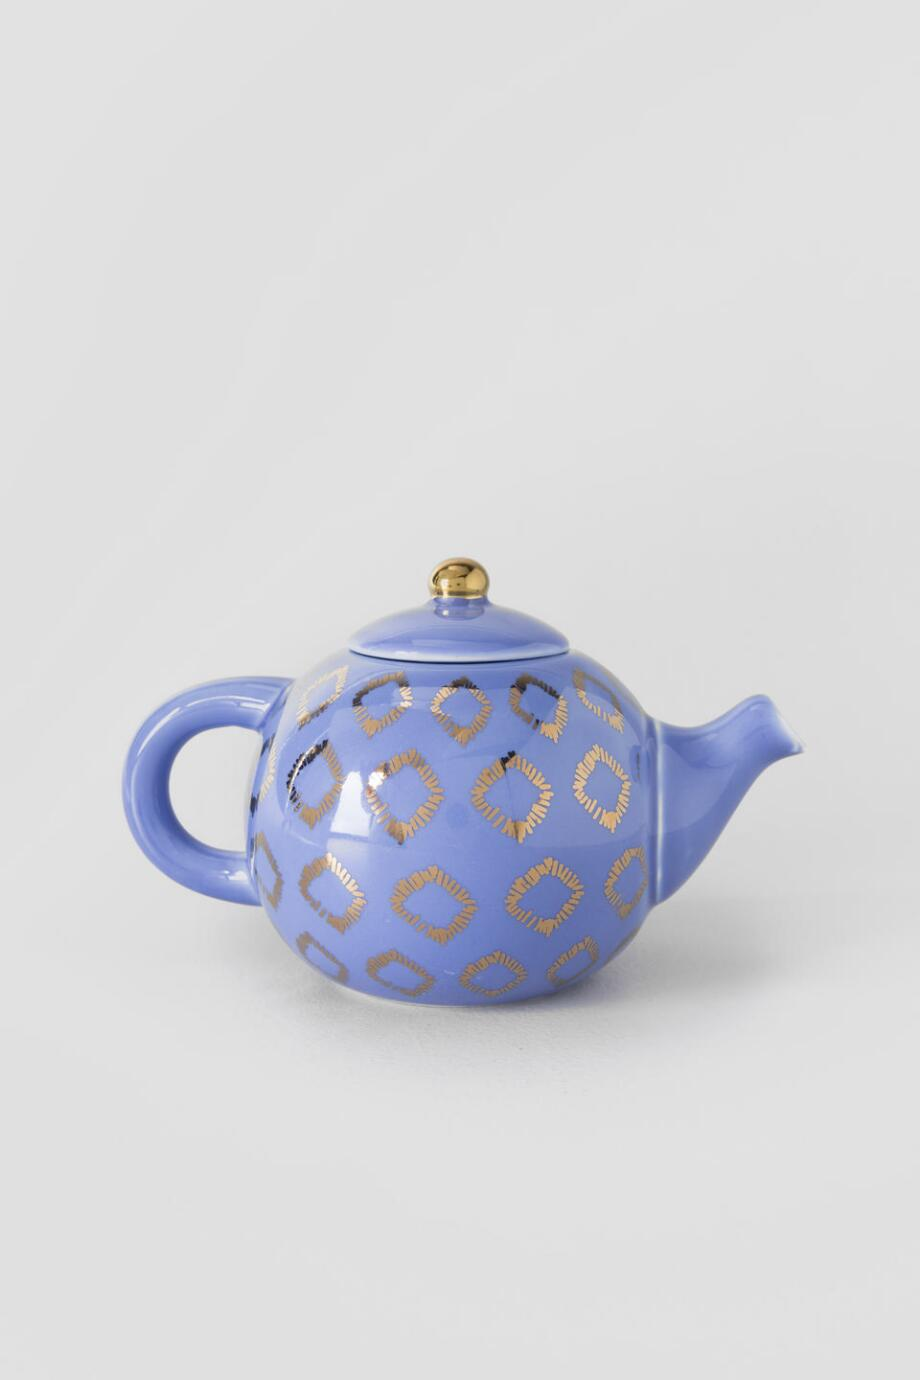 Purple & Gold Tea Pot